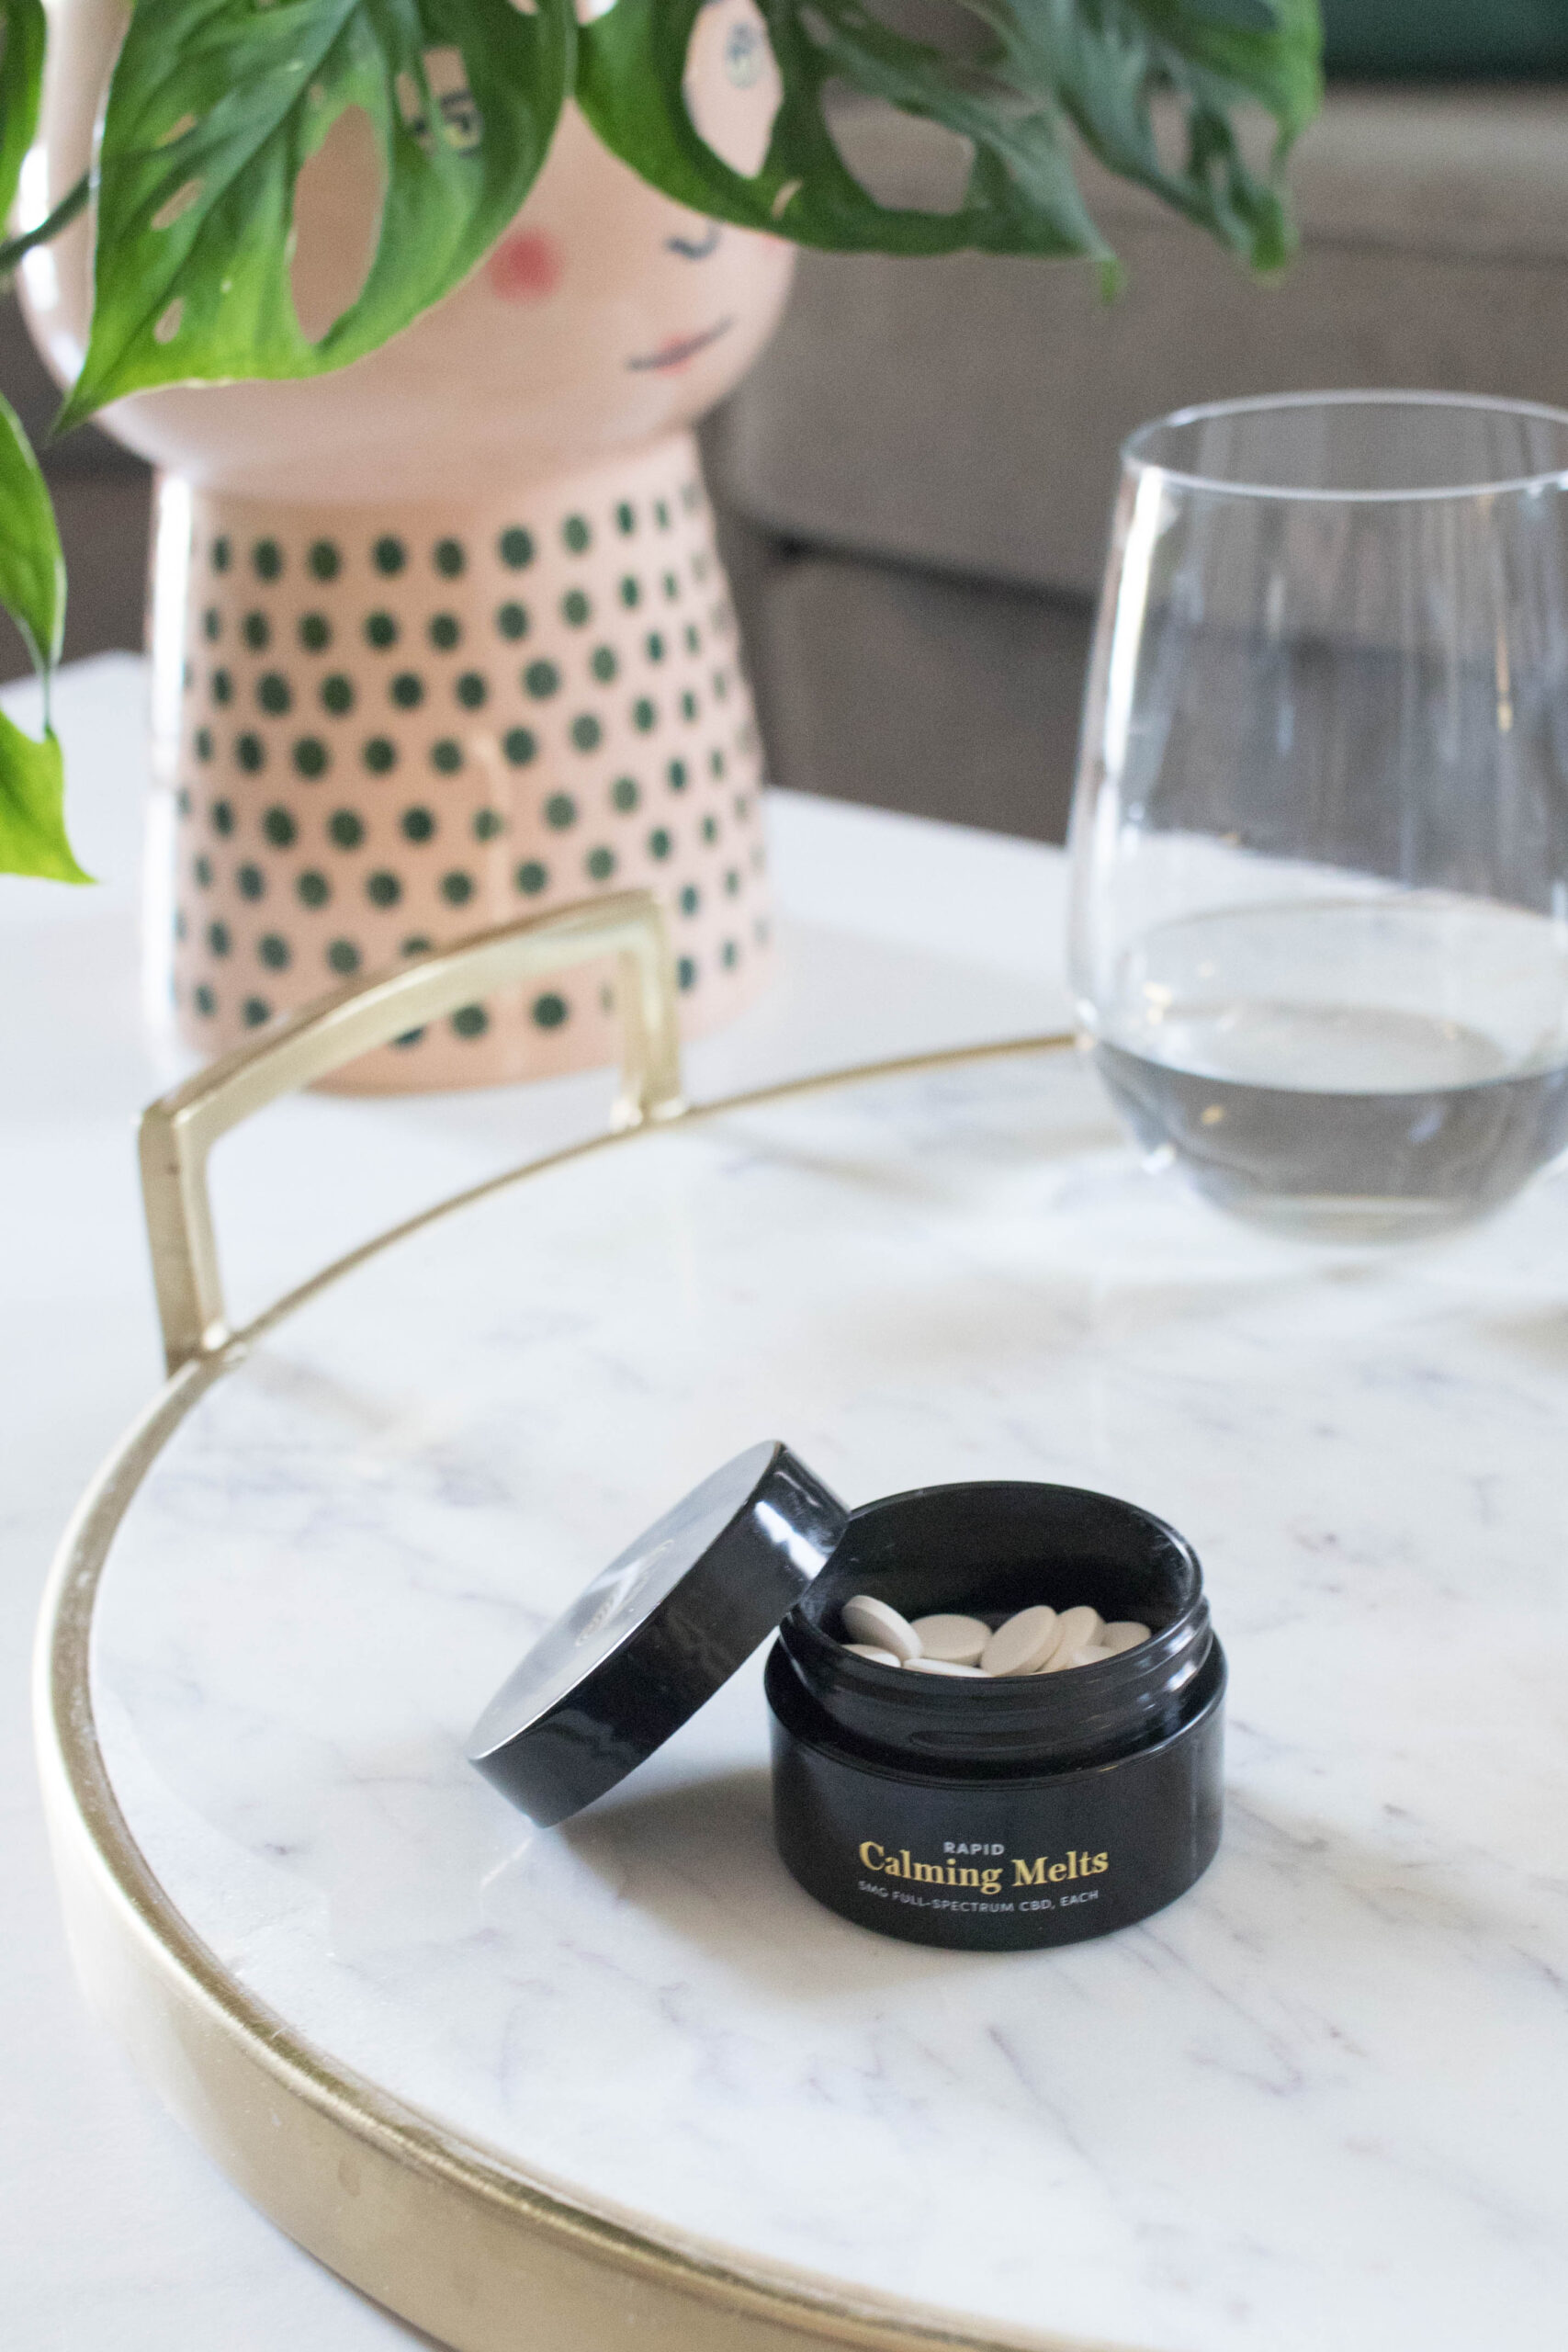 Equilibria rapid calming melts CBD review #myeq #cbdreview #equilibria